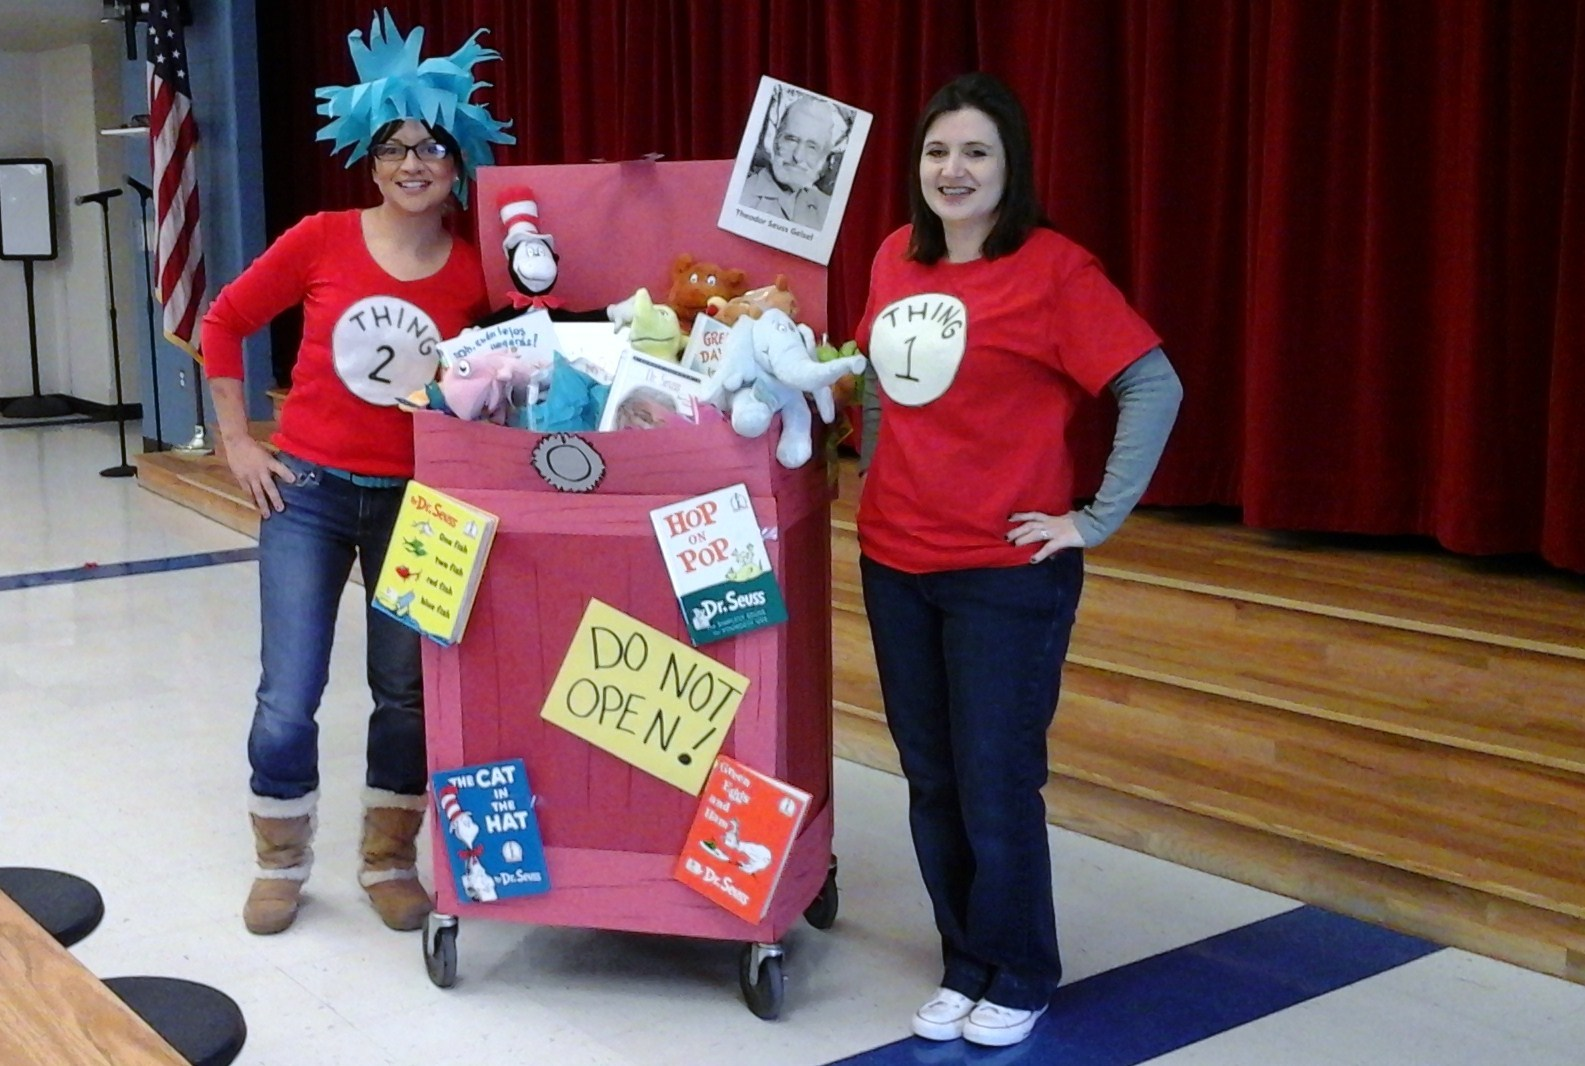 Librarian and library clerk dressed up for Dr. Seuss week.